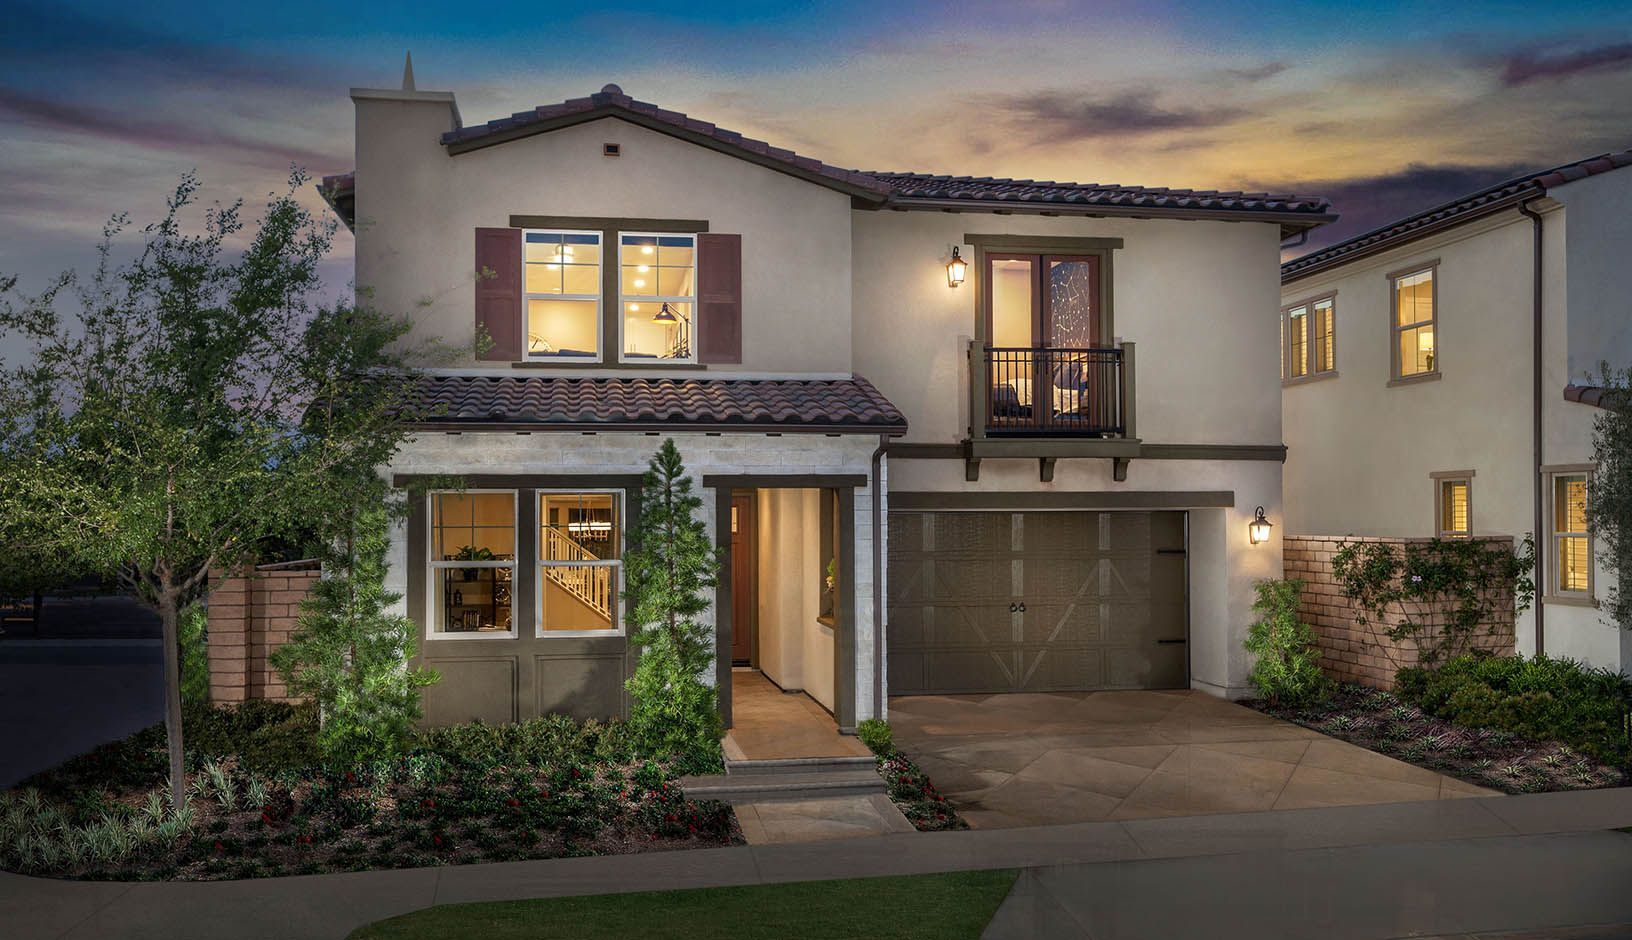 Single Family for Sale at Alston - Residence 3 4541 East Galen Drive Anaheim, California 92807 United States